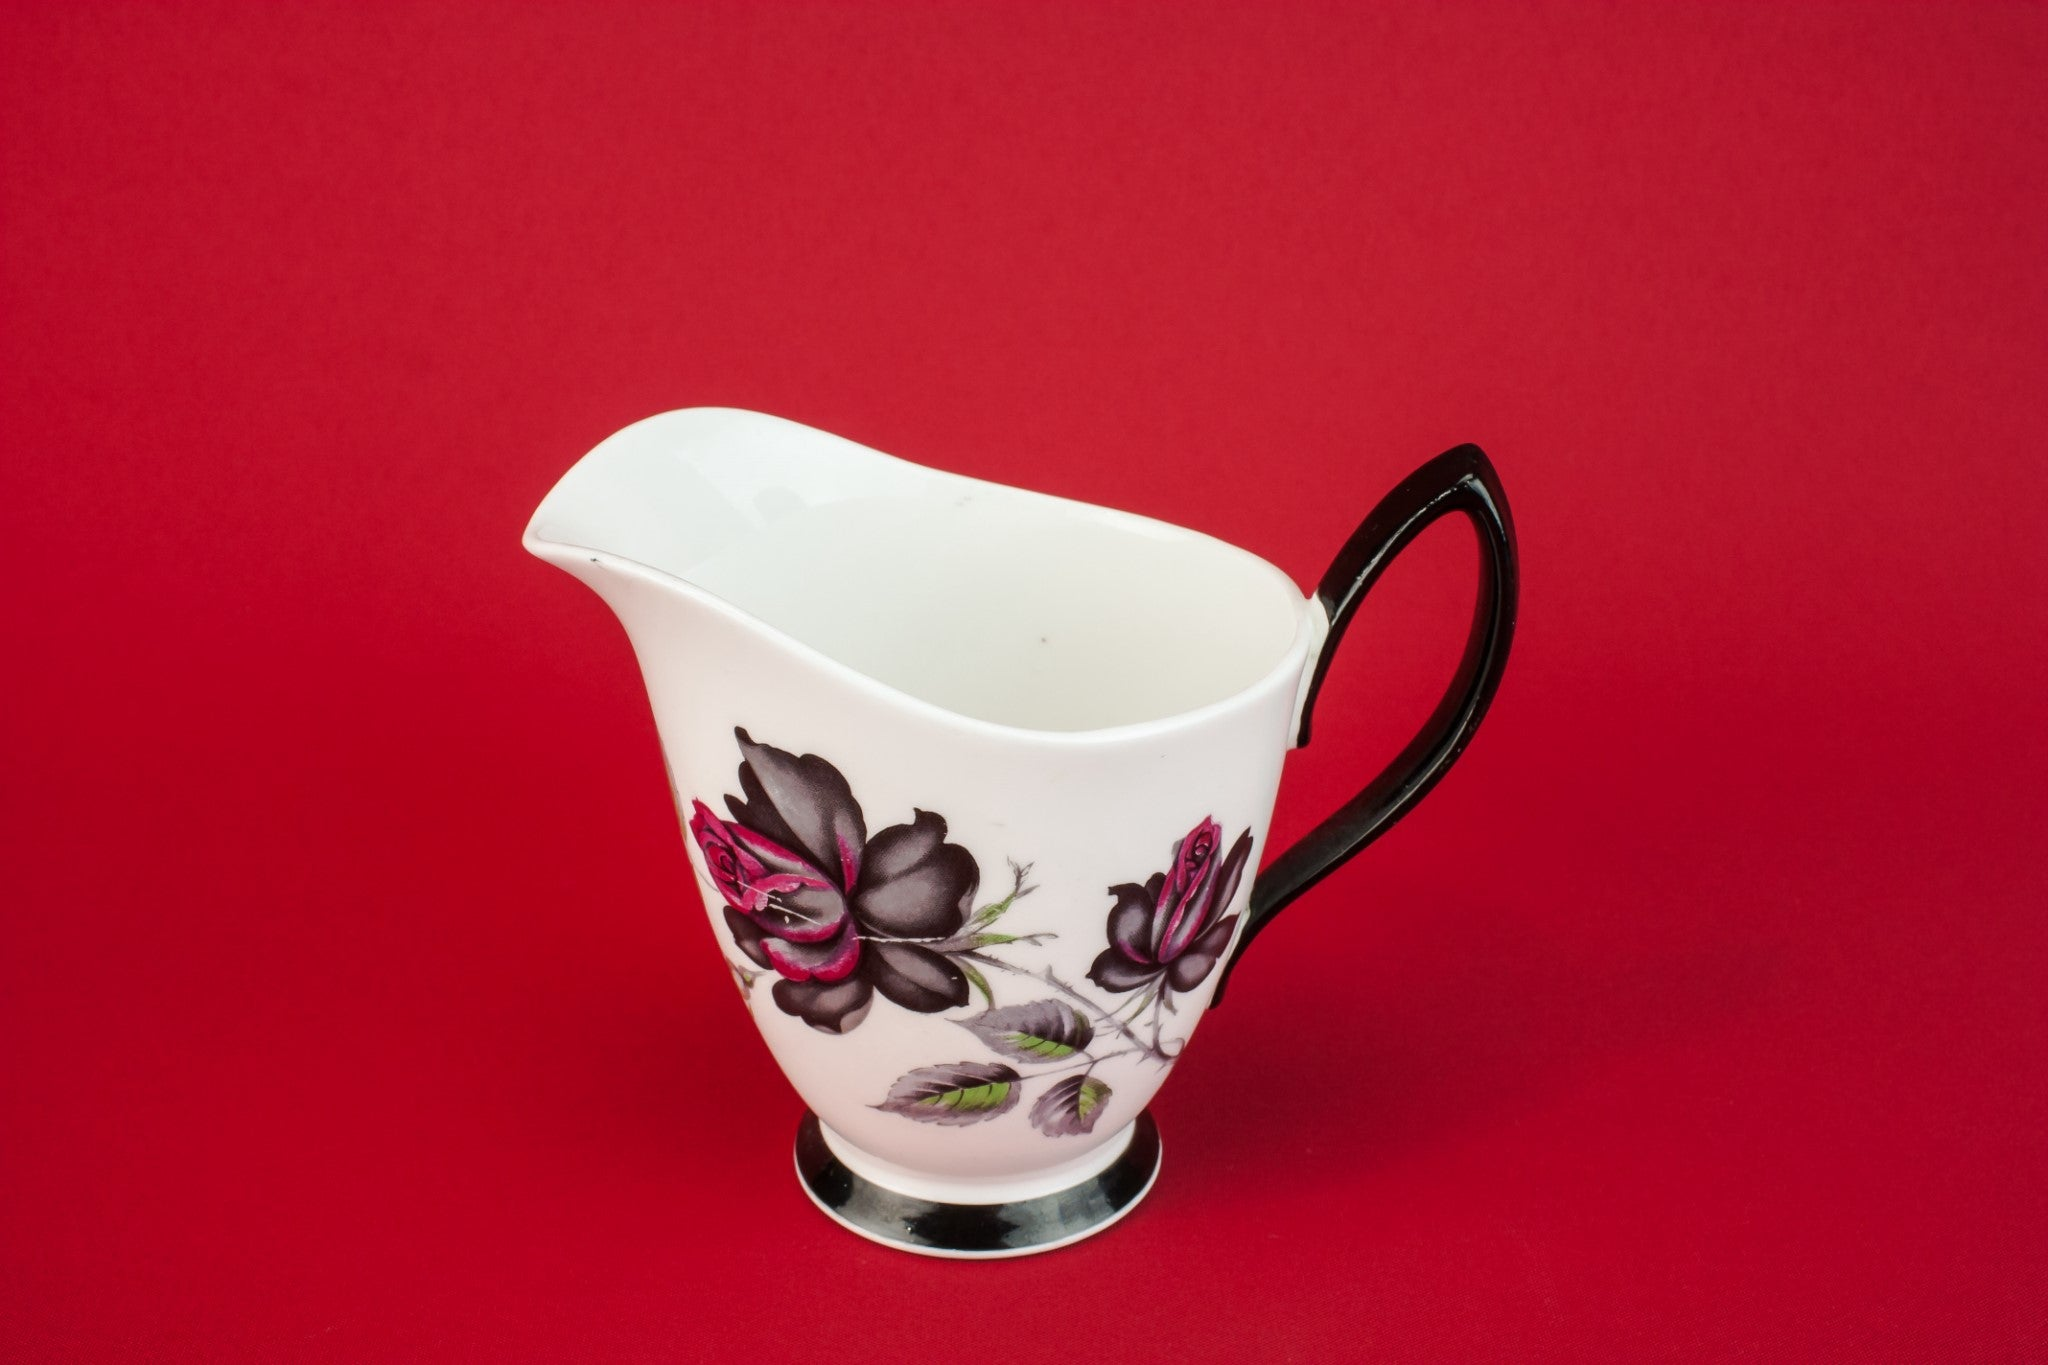 Black bone china creamer